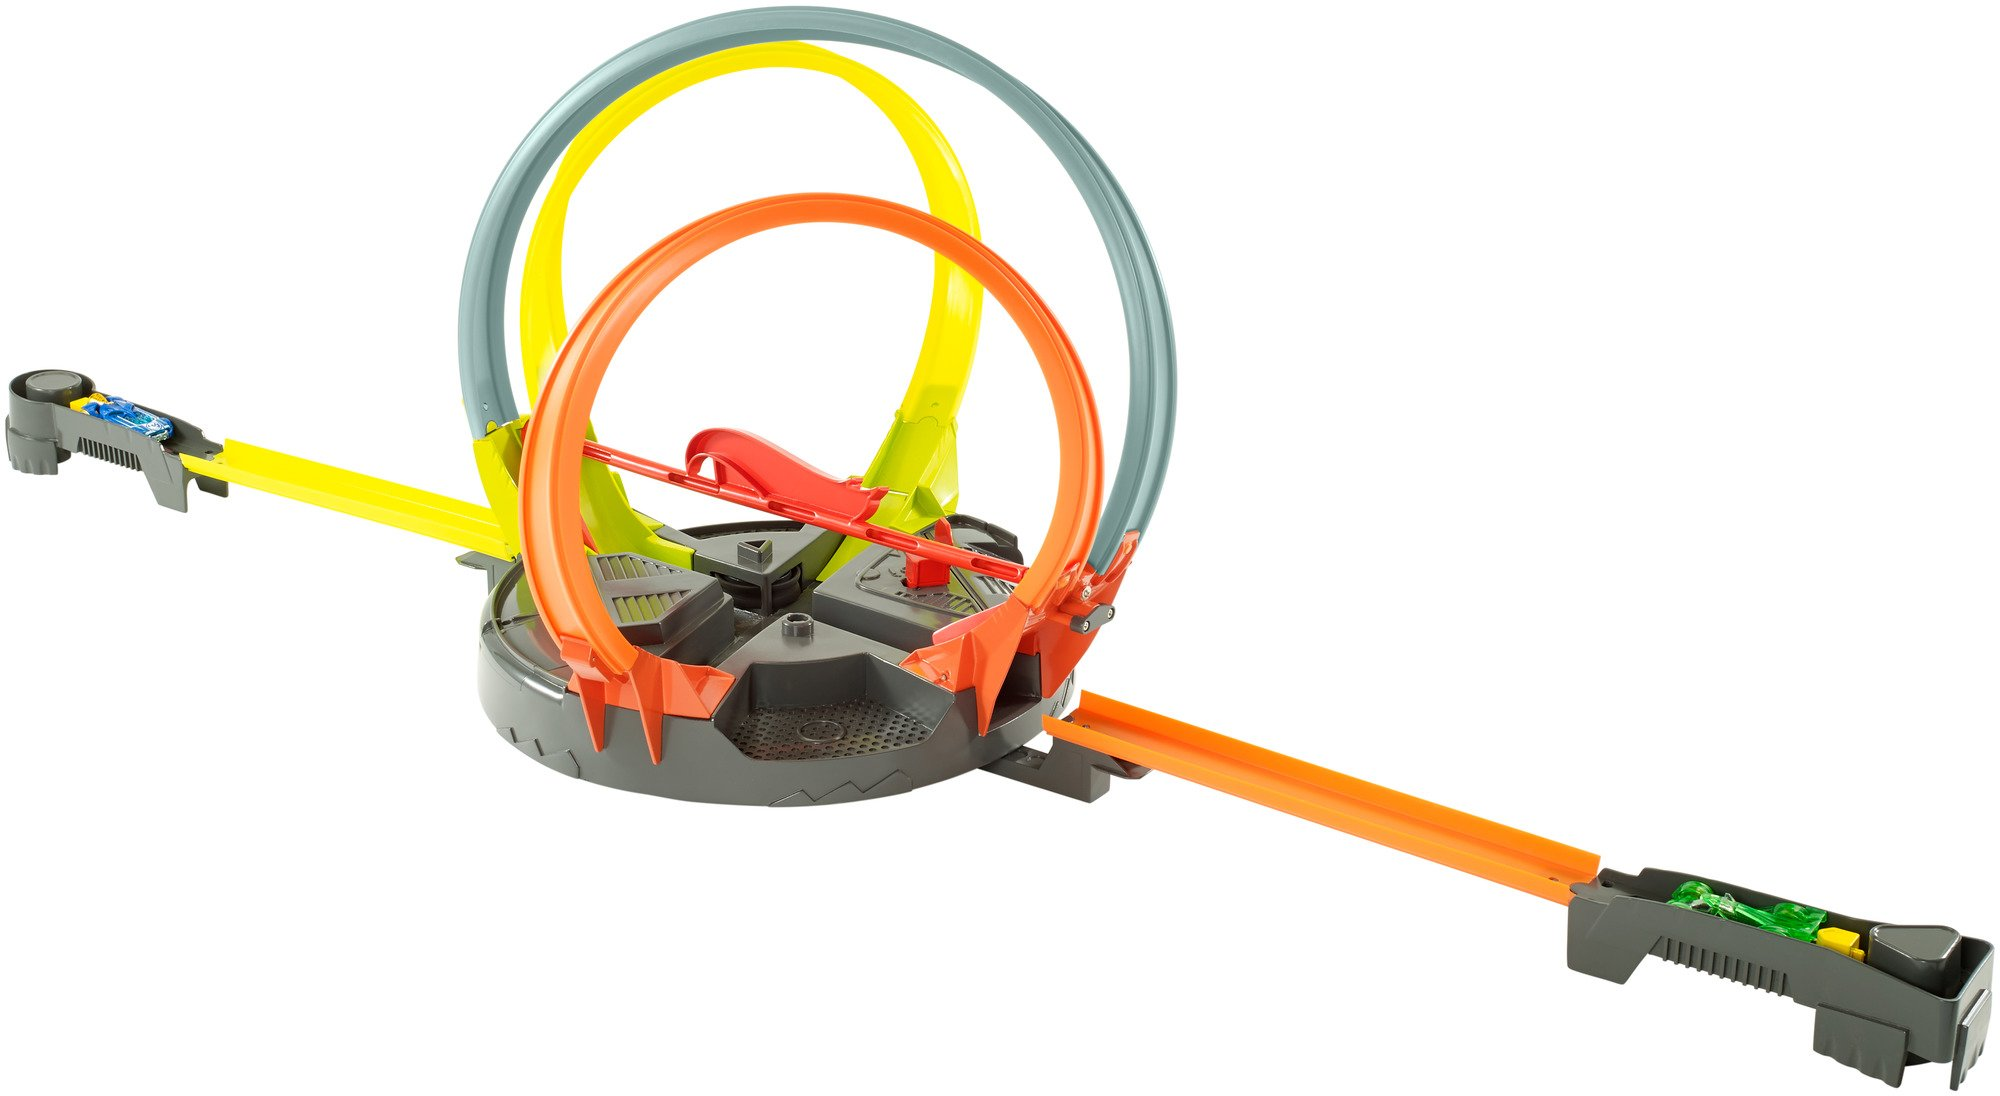 Hot Wheels Roto Revolution Track Playset by Hot Wheels (Image #11)